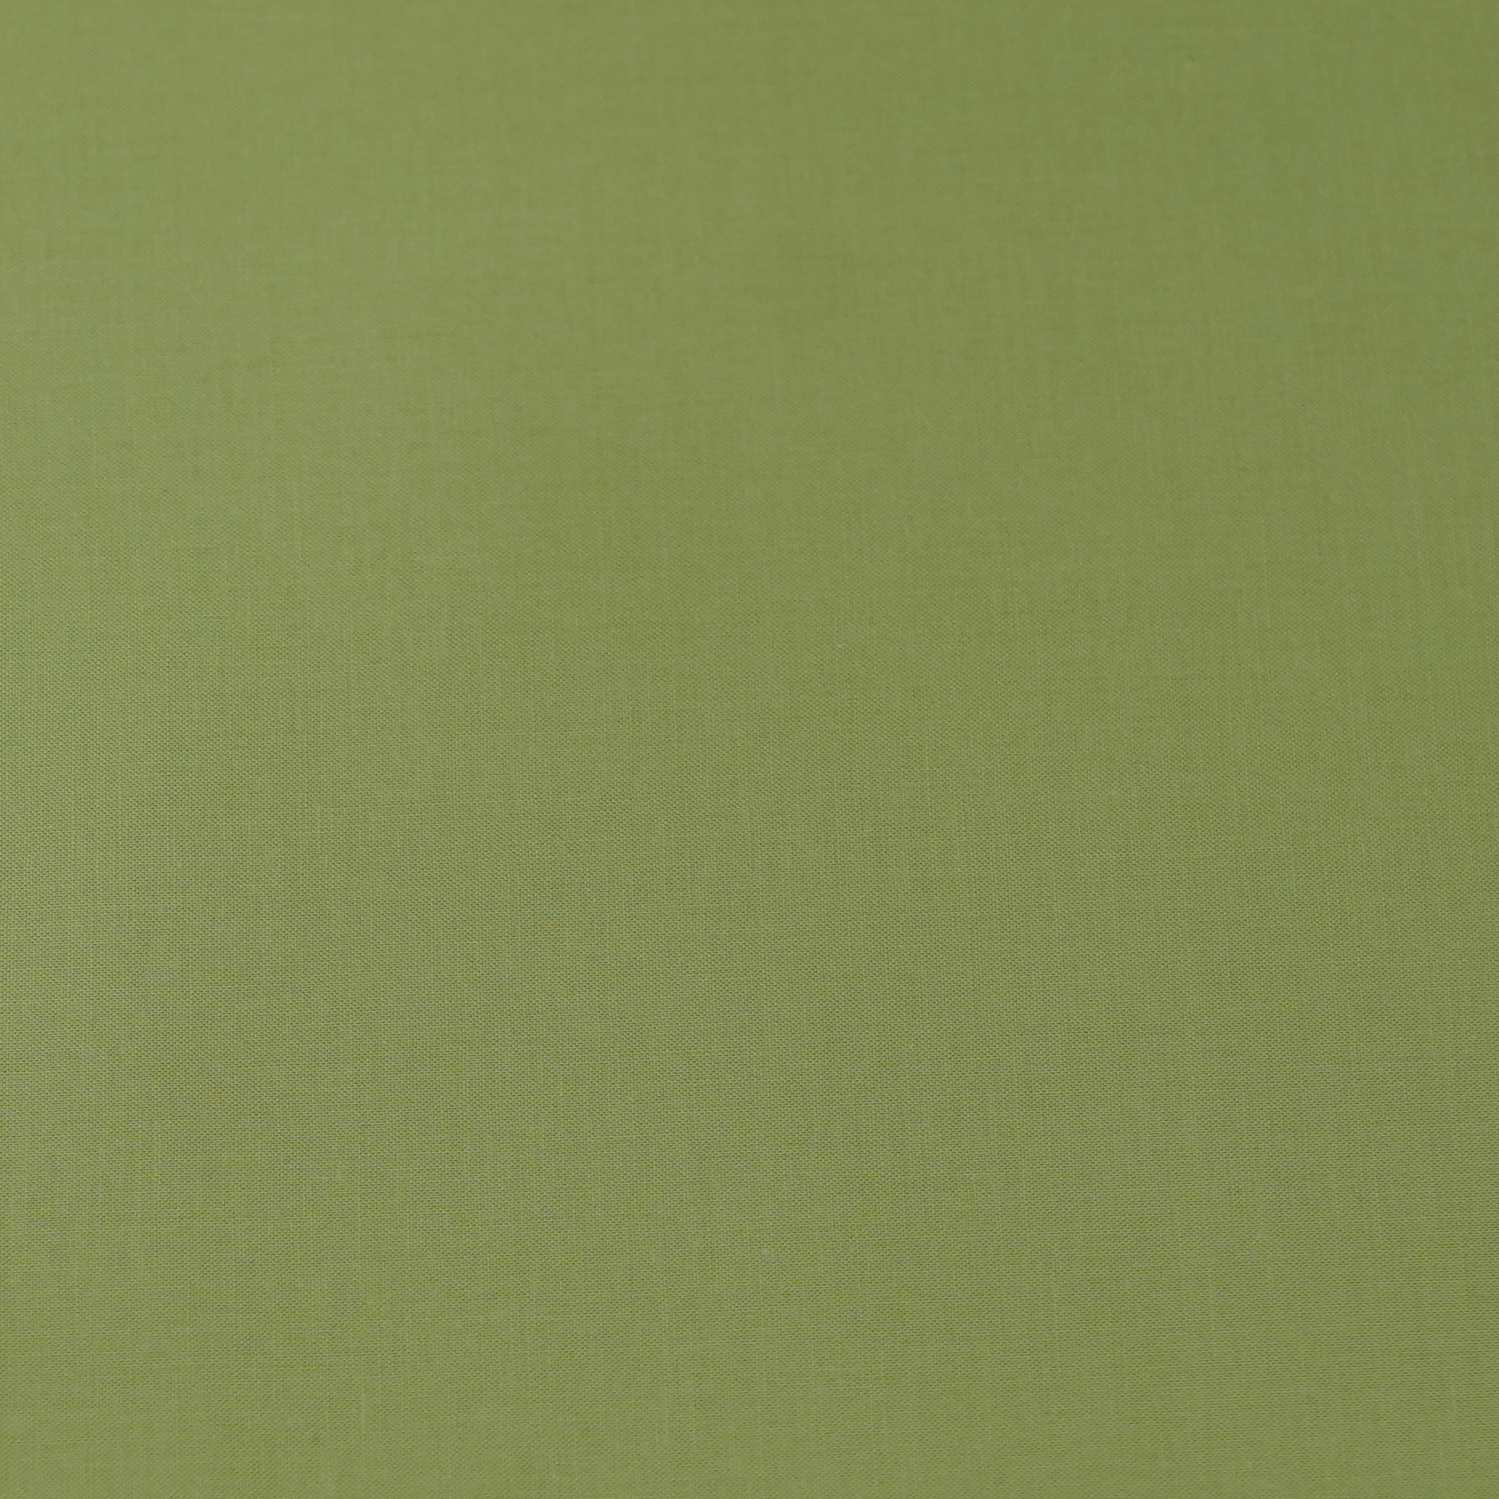 Japanese Fabric - Solid Collection - Green